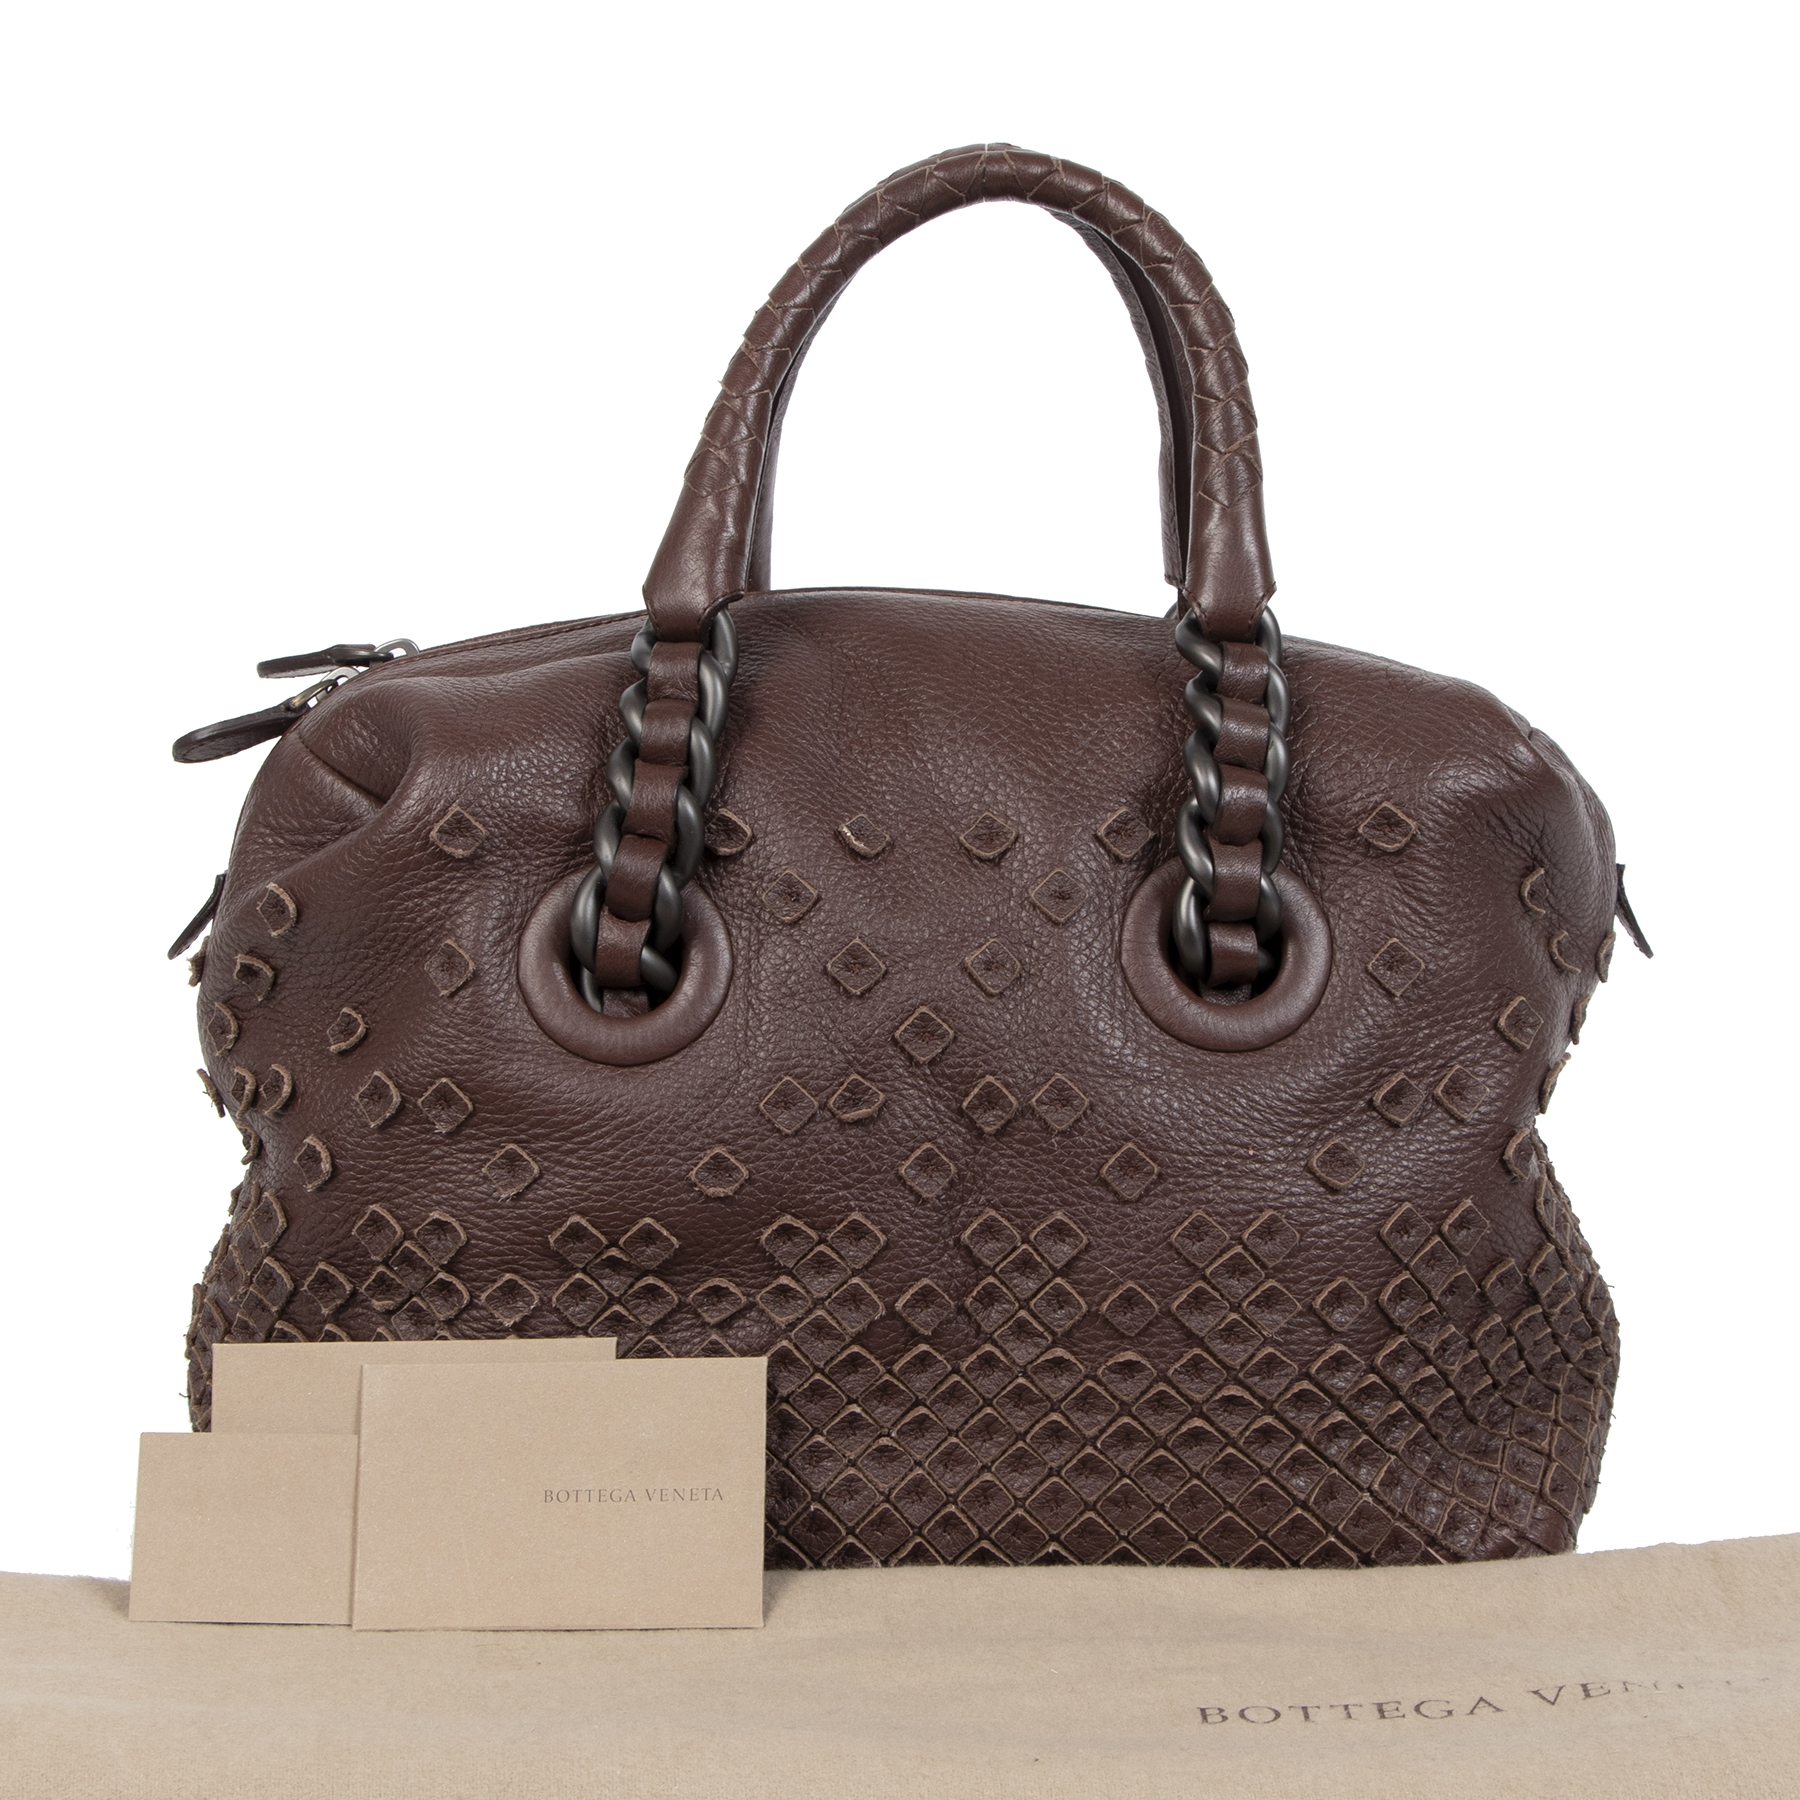 Authentique seconde-main vintage Bottega Veneta Intorechato Mini Boston Top Handle Bag Dark Brown Deer  achète en ligne webshop LabelLOV